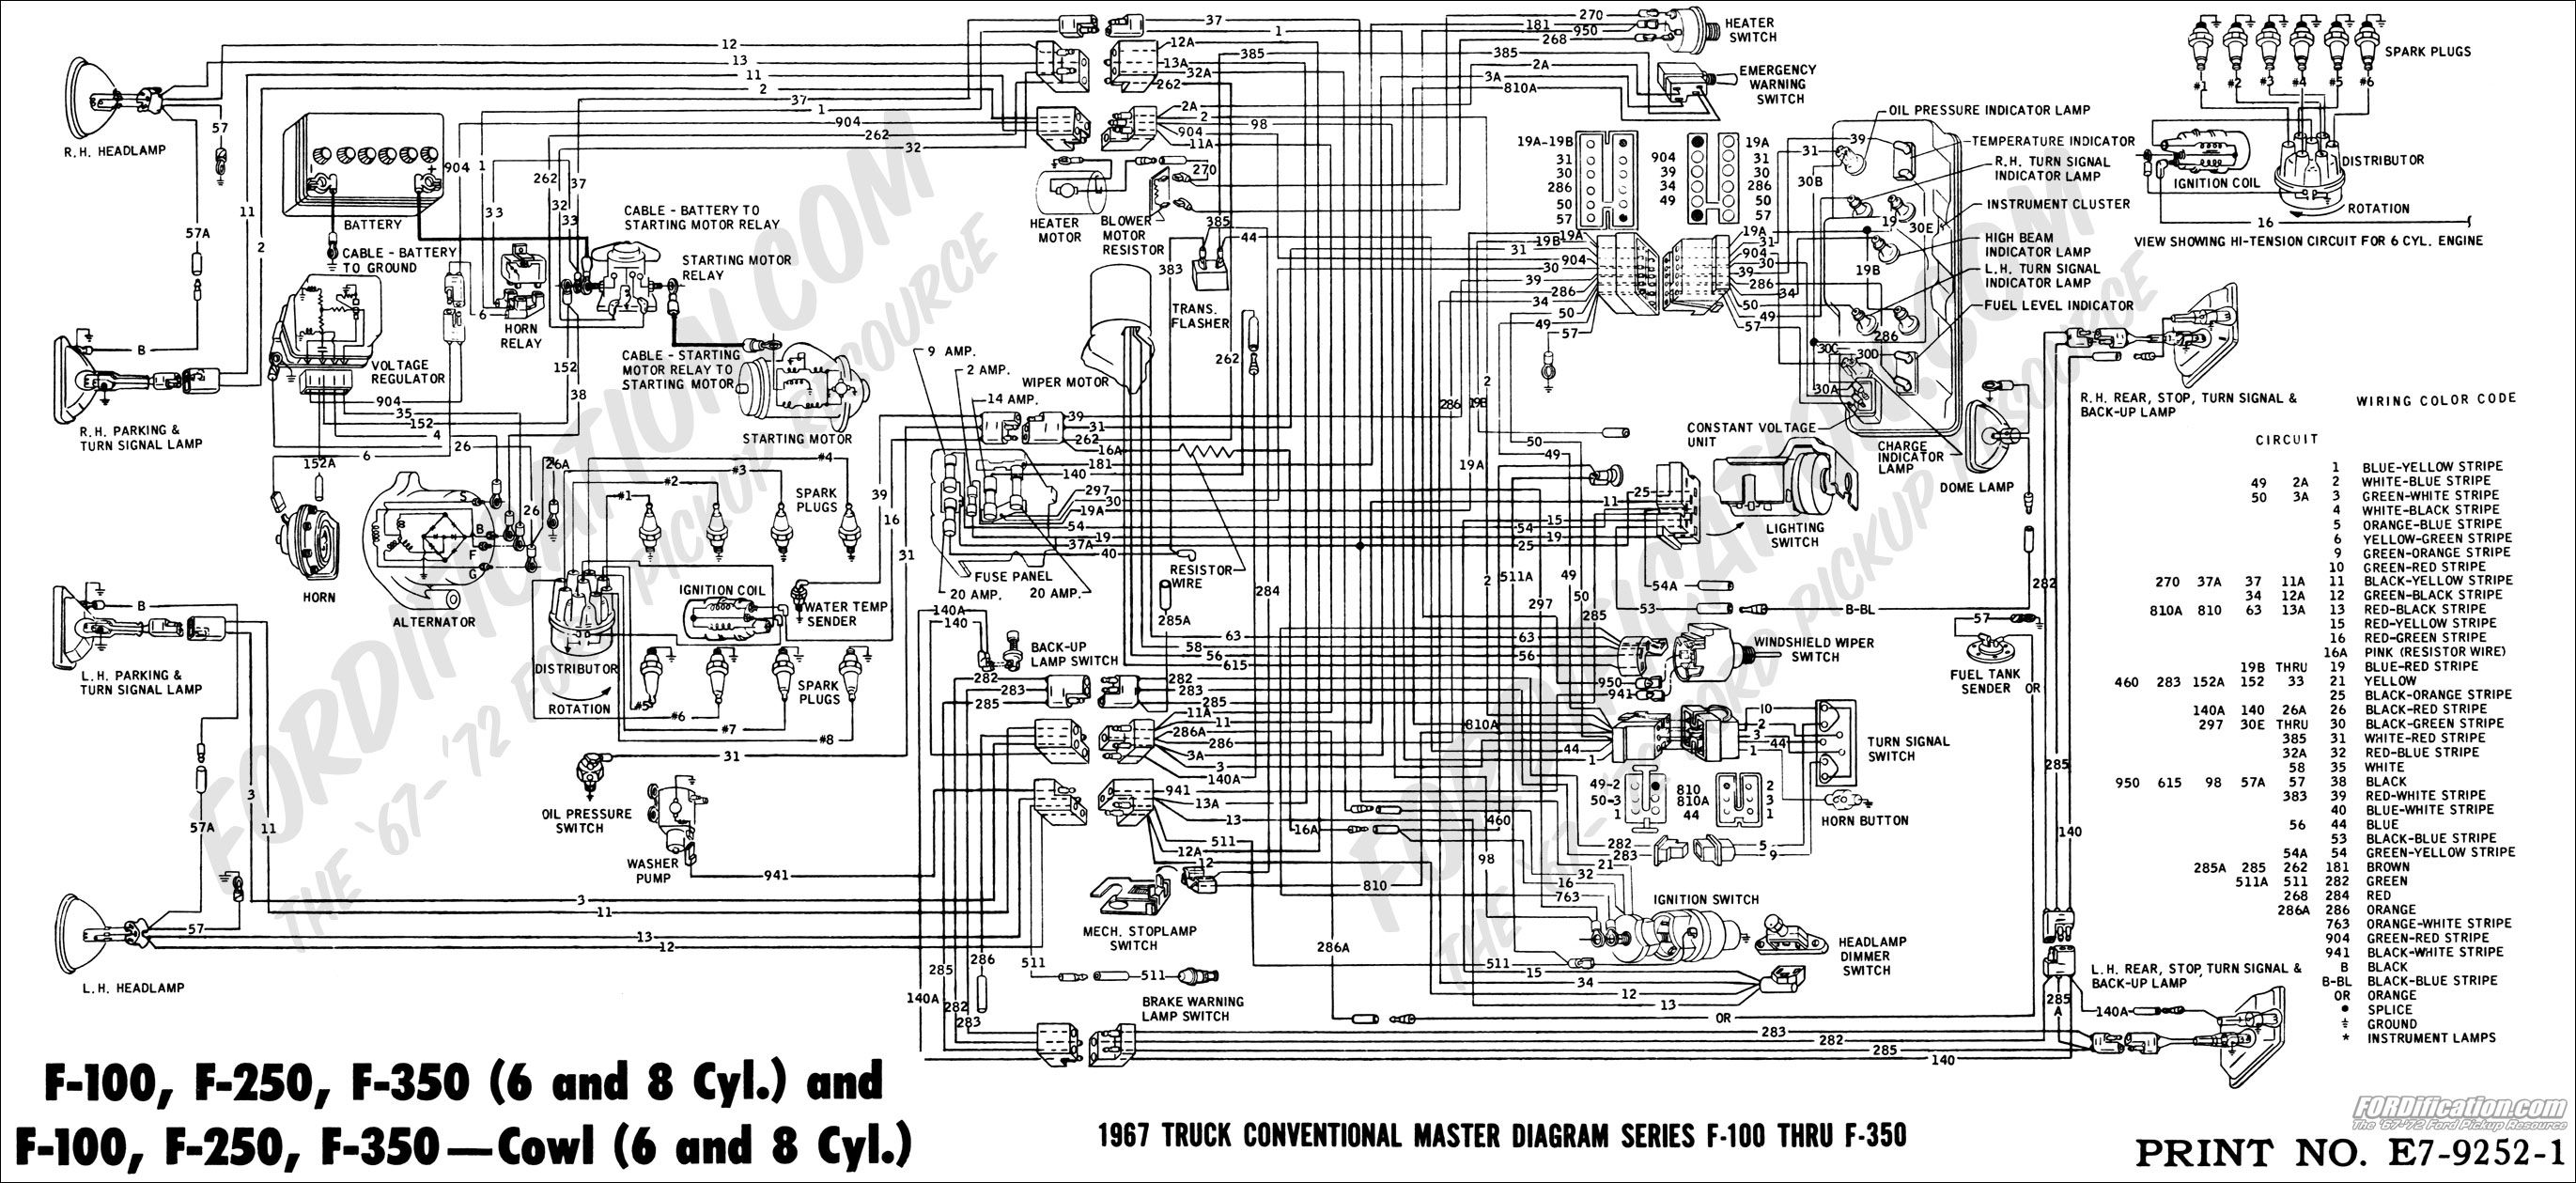 8e608320d8e6c71ff5bbdb2efdd7ada1 ford truck technical drawings and schematics section h wiring Ford E 350 Wiring Diagrams at mr168.co